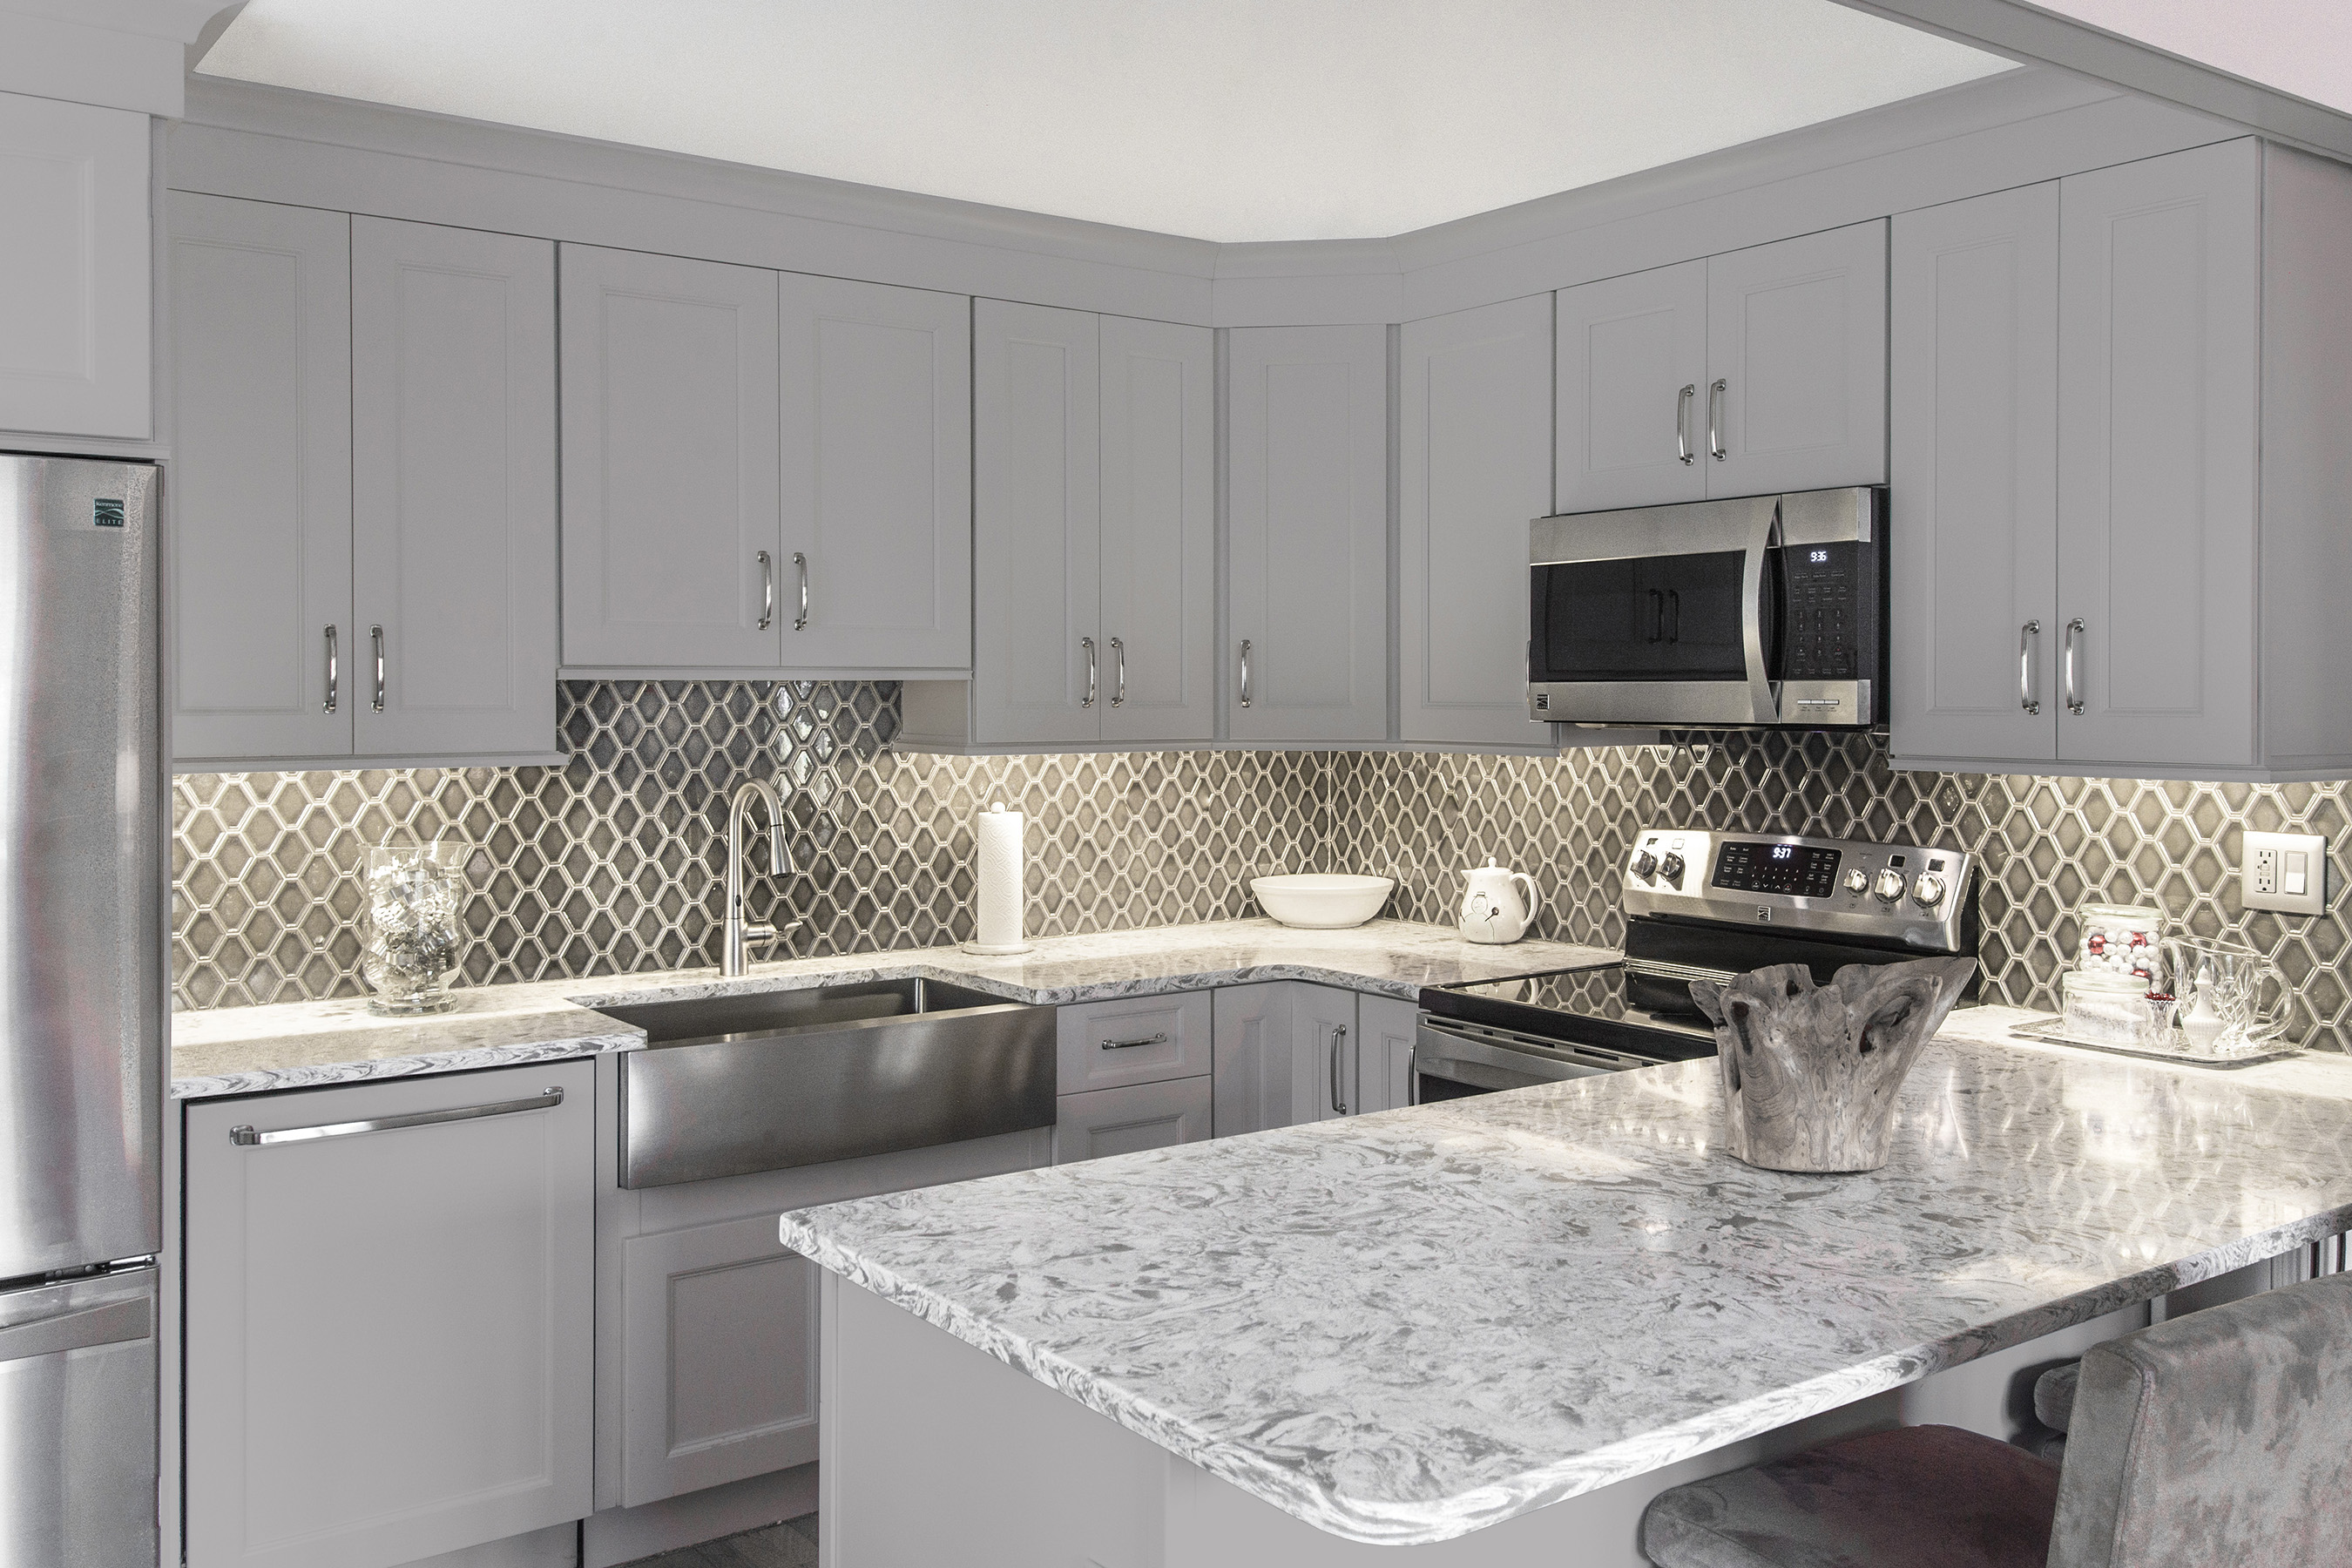 Kitchen cabinets and beyond anaheim reviews - Create An Elegant And Cohesive D Cor By Matching The Appliances With The Cabinets